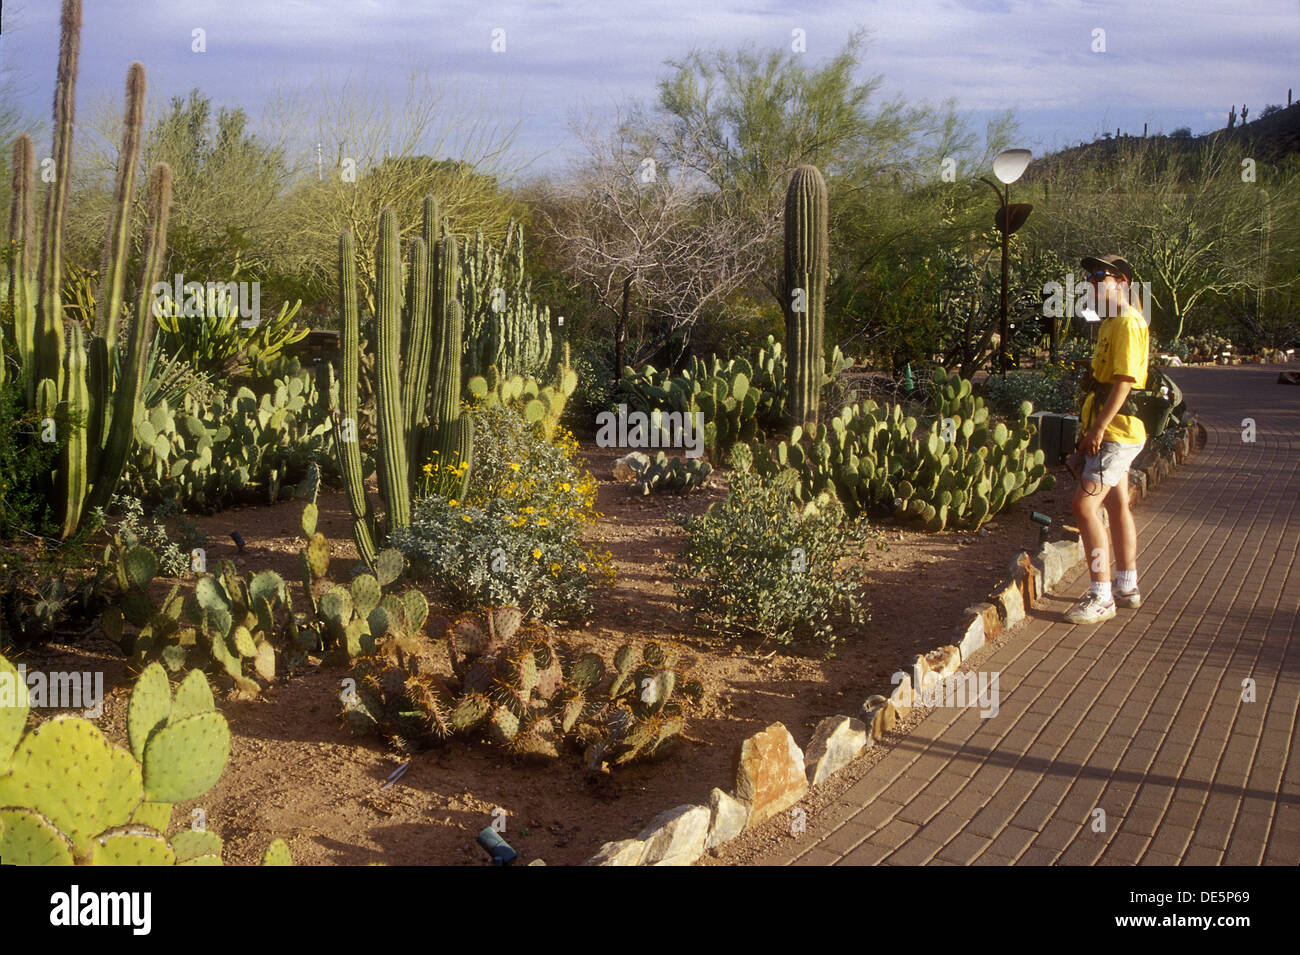 Desert Botanical Stock Photos & Desert Botanical Stock Images - Alamy